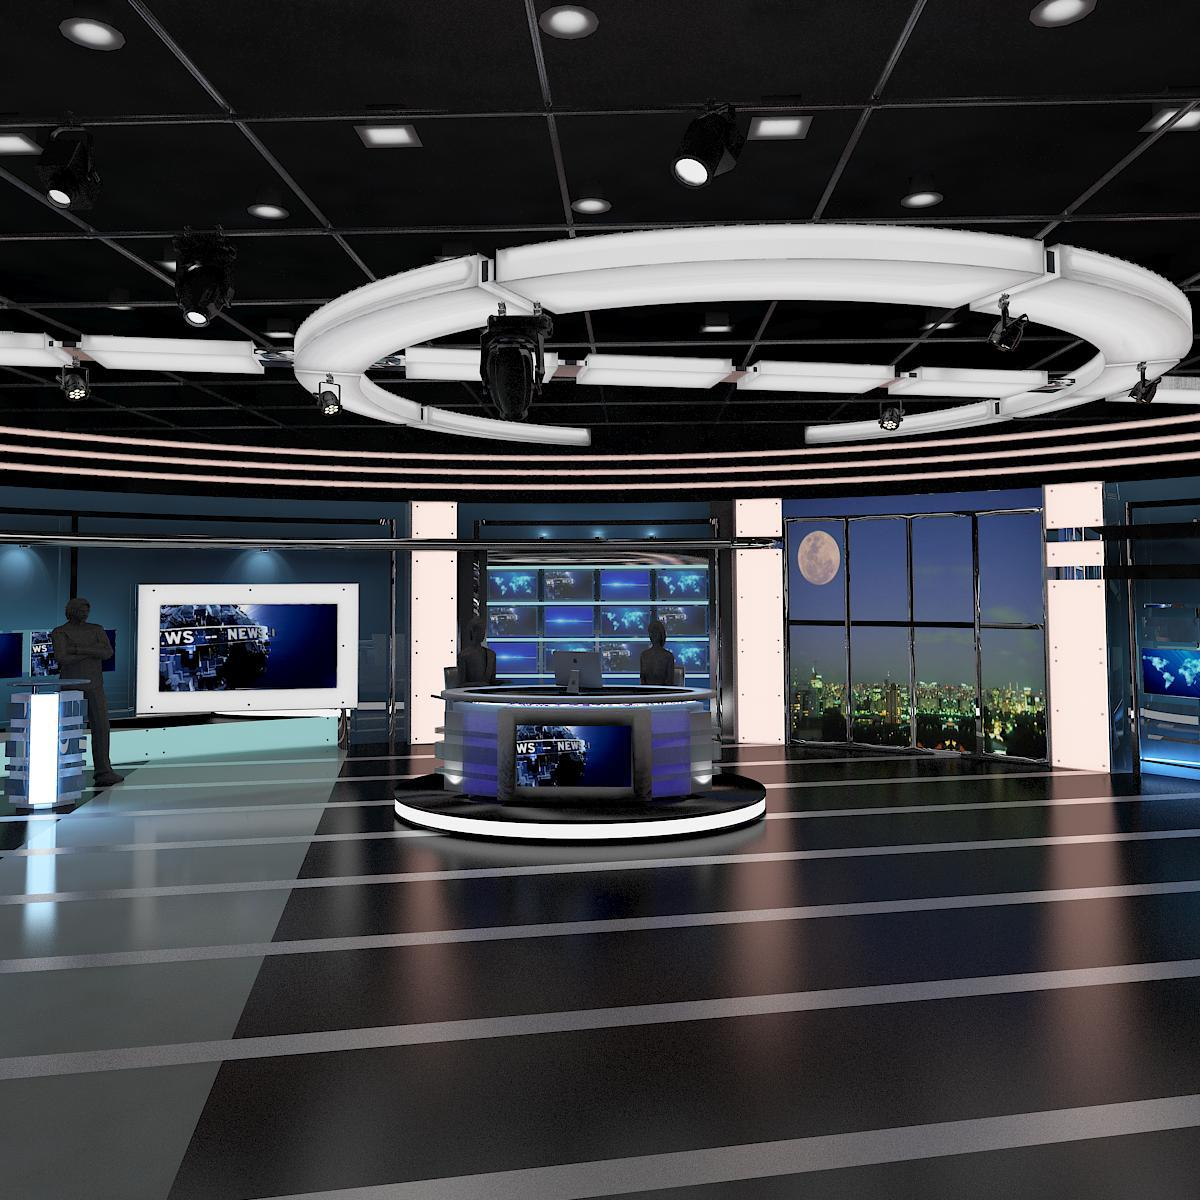 tv panggung virtual studio ruang berita 027 3d model 3ds maks dxf fbx tekstur obj 215541